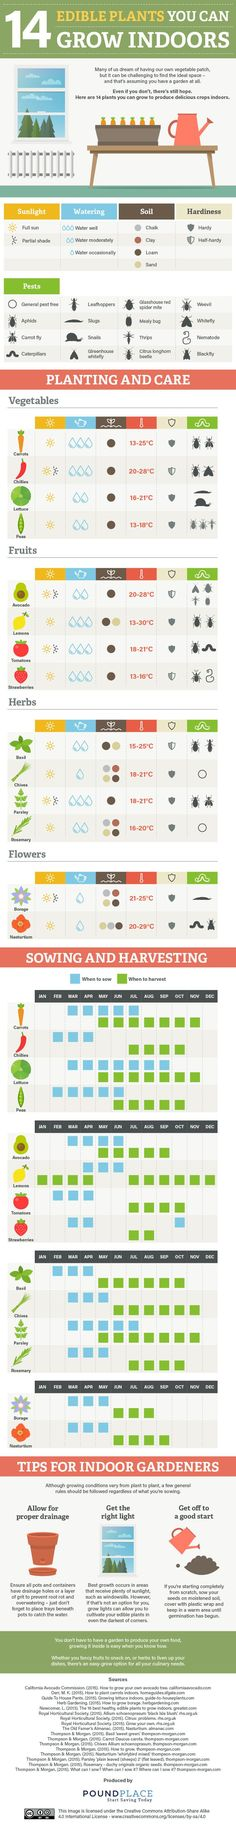 #INFOGRAPHIC: 14 edible plants that you can grow indoors